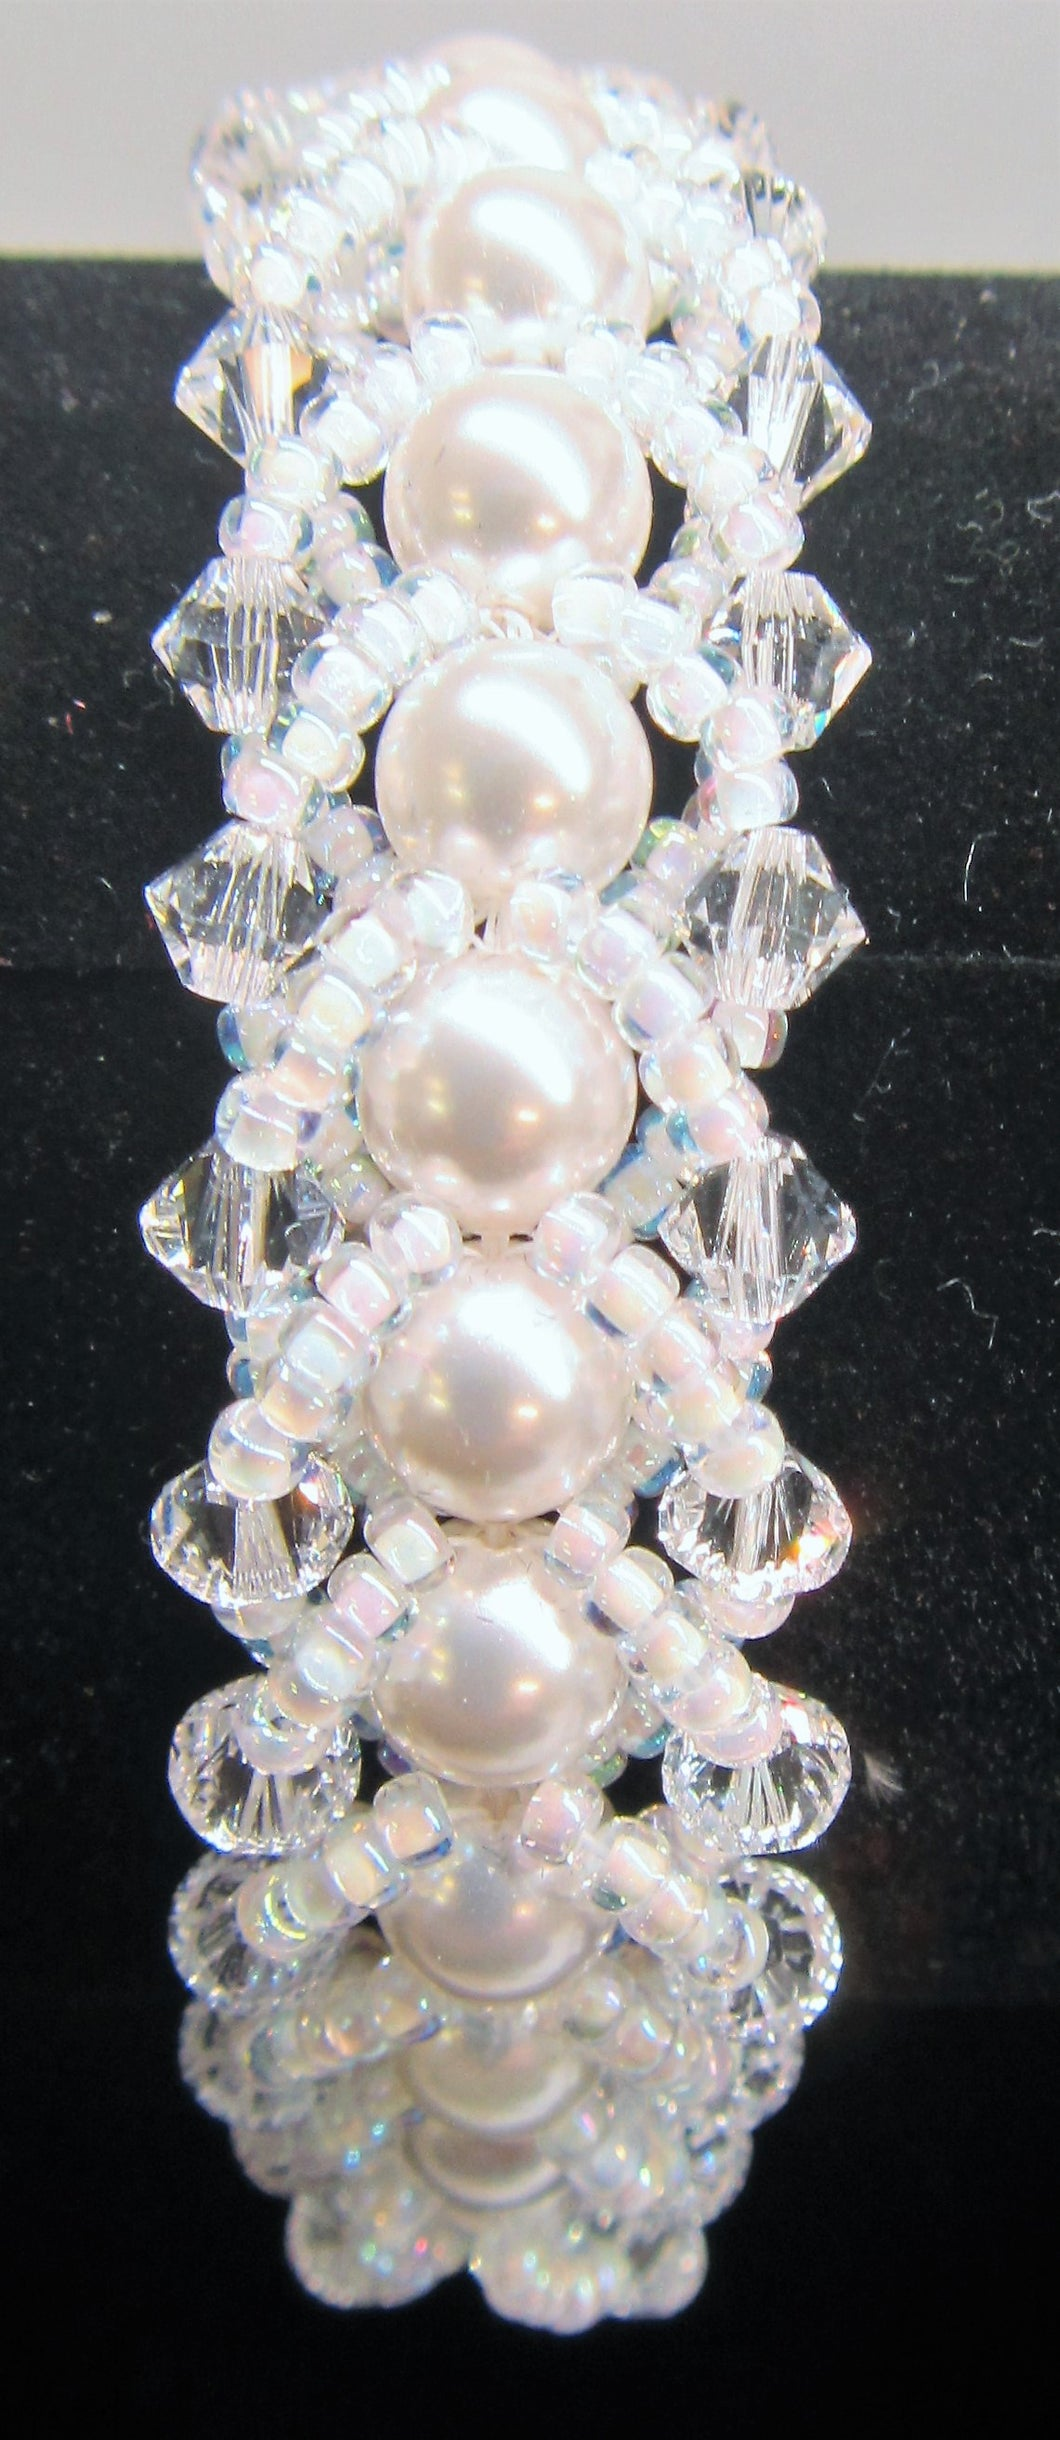 Beautiful handcrafted bracelet with swarovski pearls and swarovski crystals